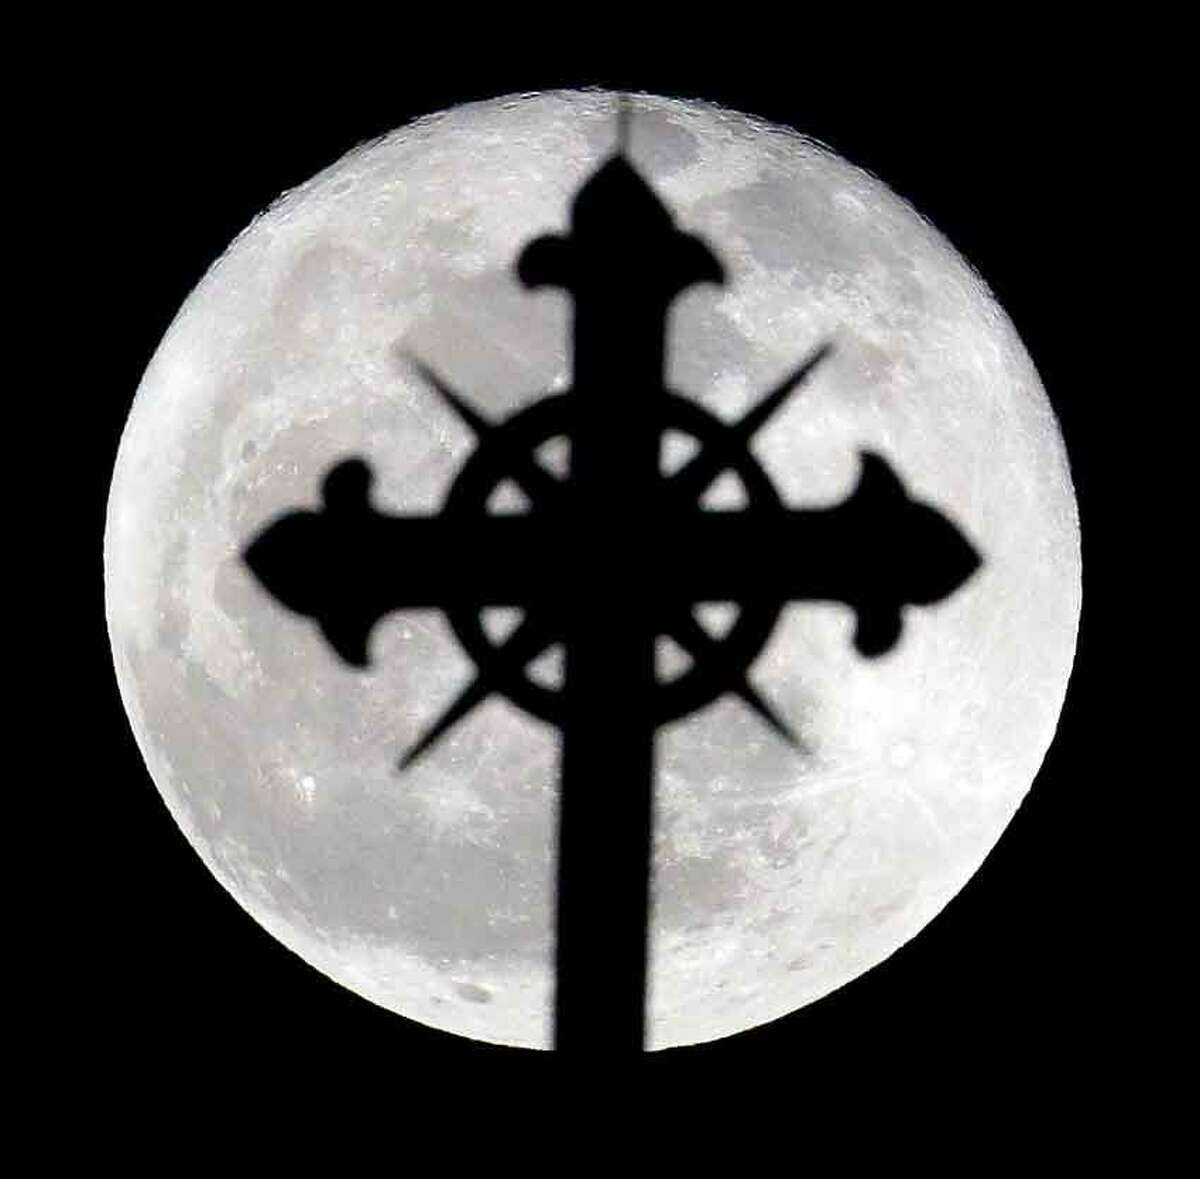 A full moon rises behind a cross on top of Saint Nicholas Catholic Church in the Heights neighborhood of Jersey City, N.J., Wednesday, March 27, 2013. Catholics are observing Holy Week, which is the final week of the Lent period before Easter. (AP Photo/Julio Cortez)